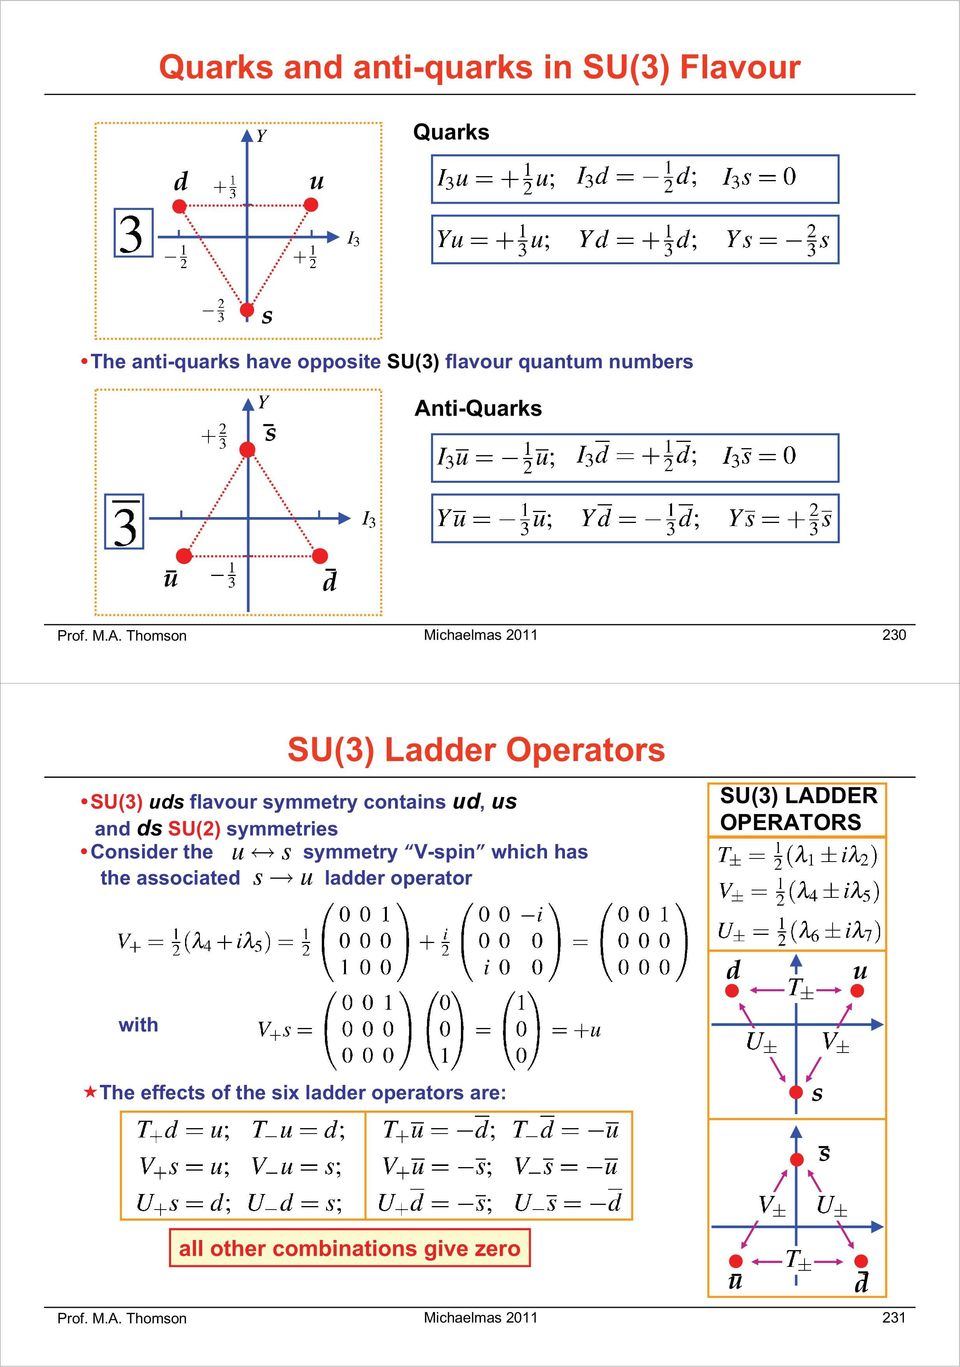 and ds SU(2) symmetries Consider the symmetry V-spin which has the associated ladder operator SU(3) LADDER OPERATORS d u